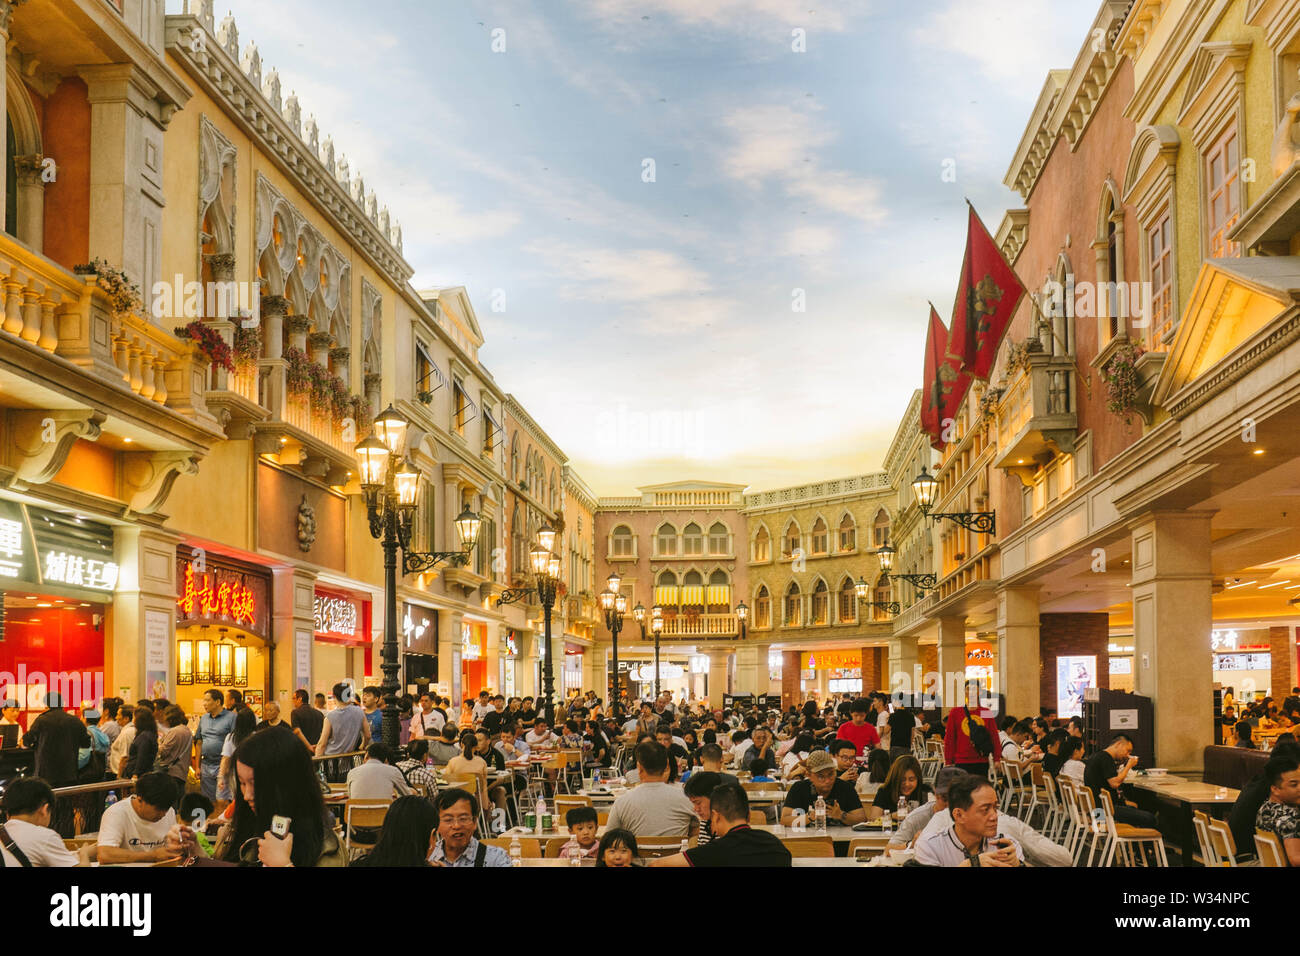 Interior of shopping mall of the Venetian Macao. - Stock Image